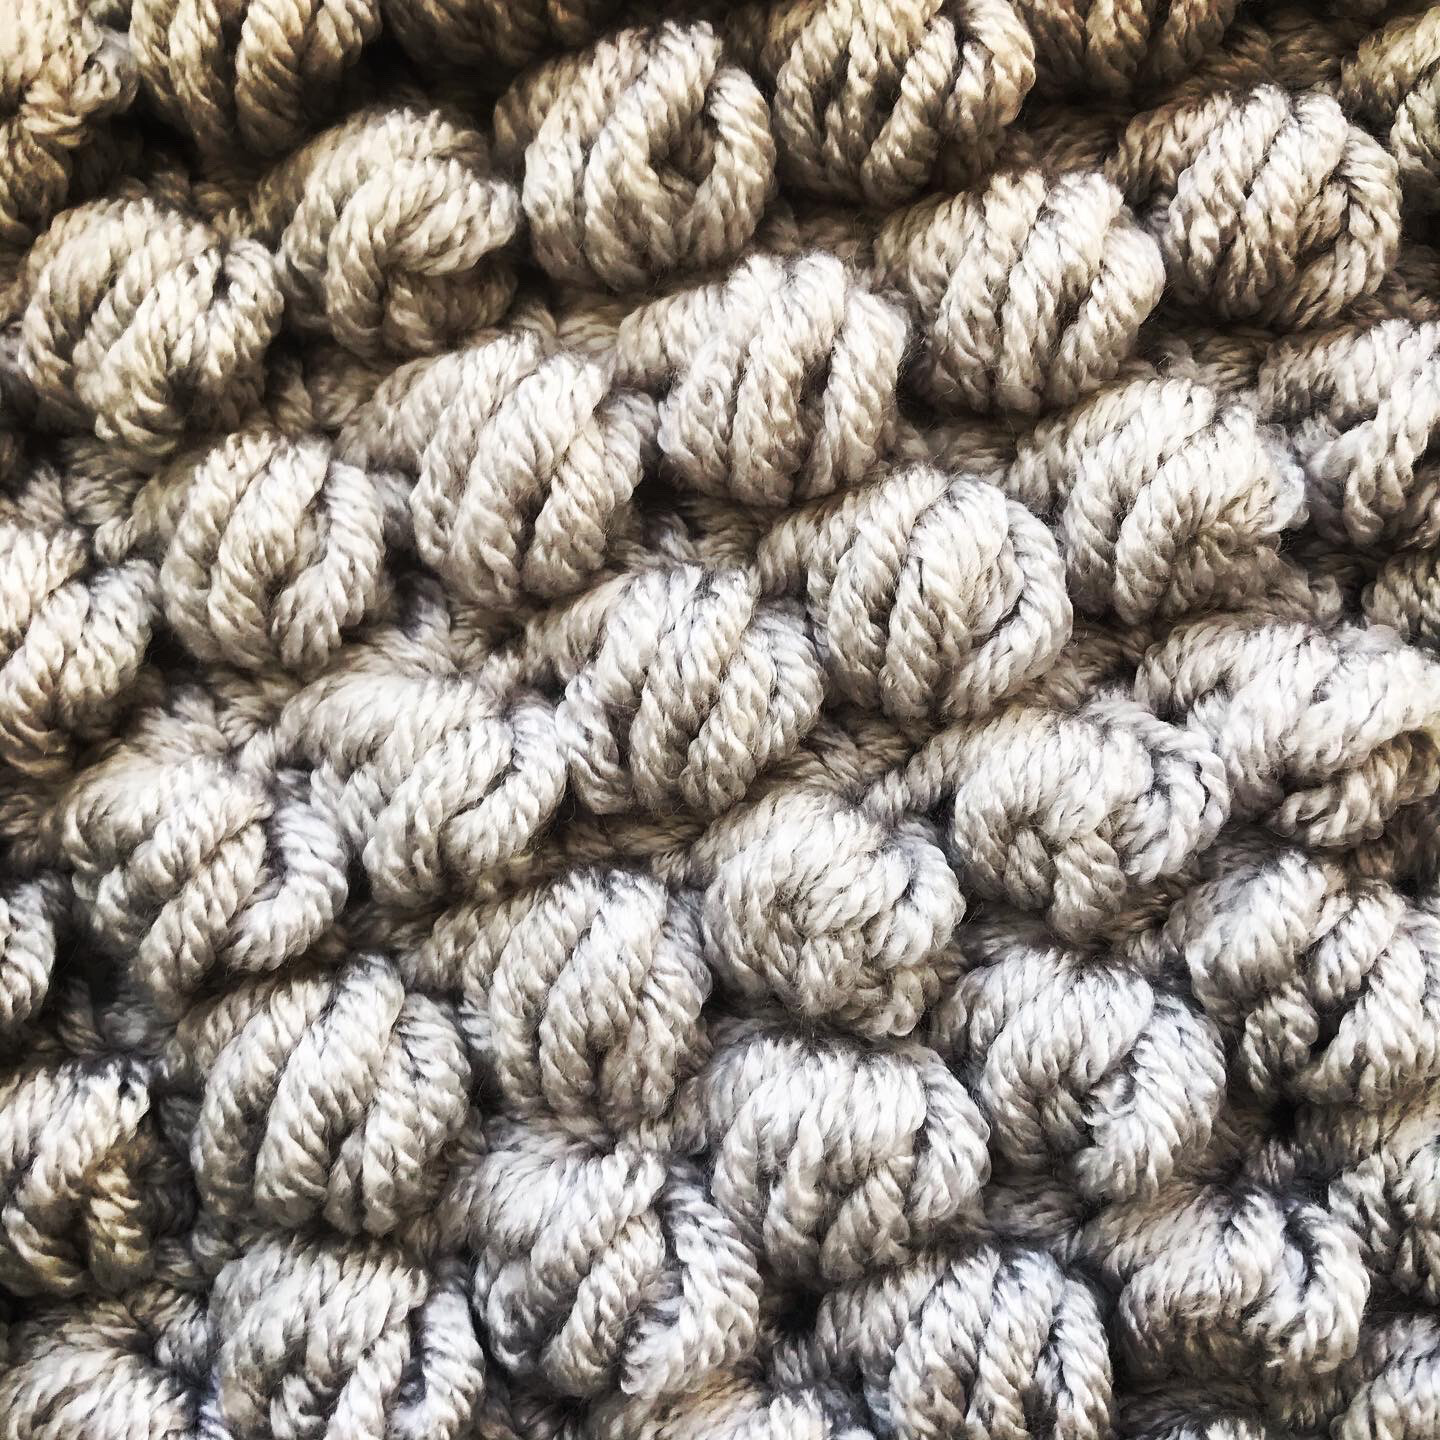 Crocheting Course Learn at Home Live with Rachel - Intermediate